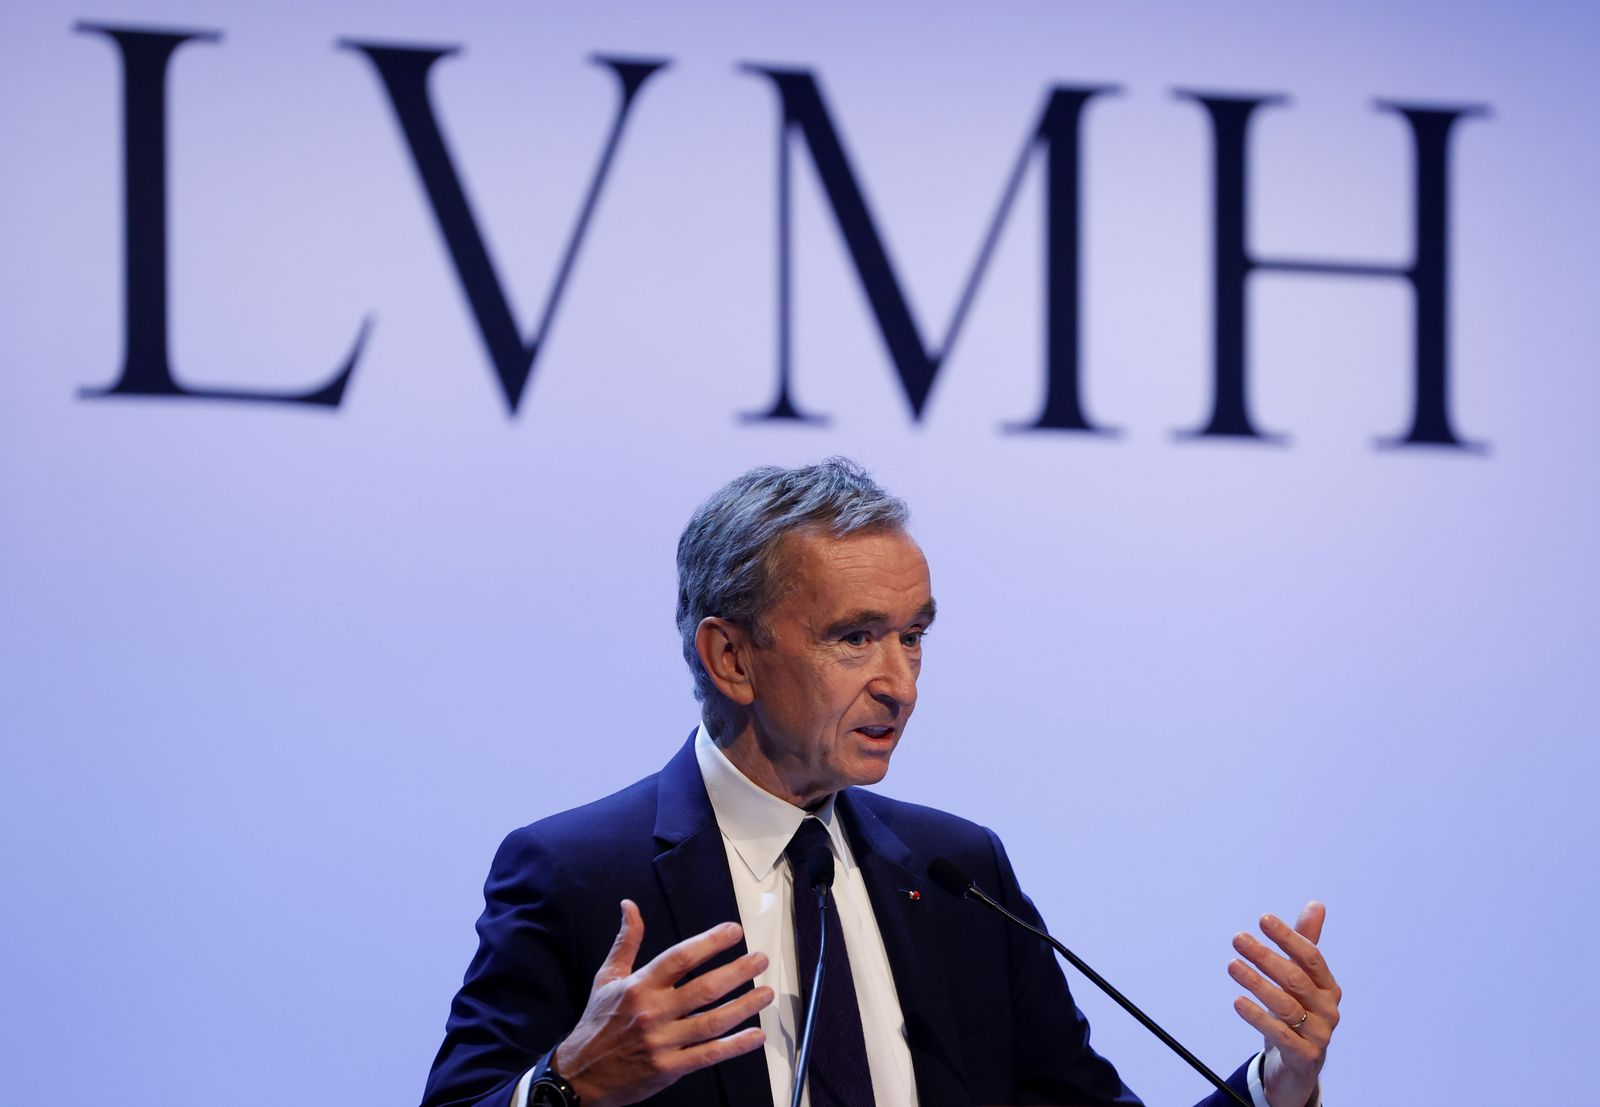 FILE PHOTO: LVMH luxury group Chief Executive Bernard Arnault announces their 2019 results in Paris